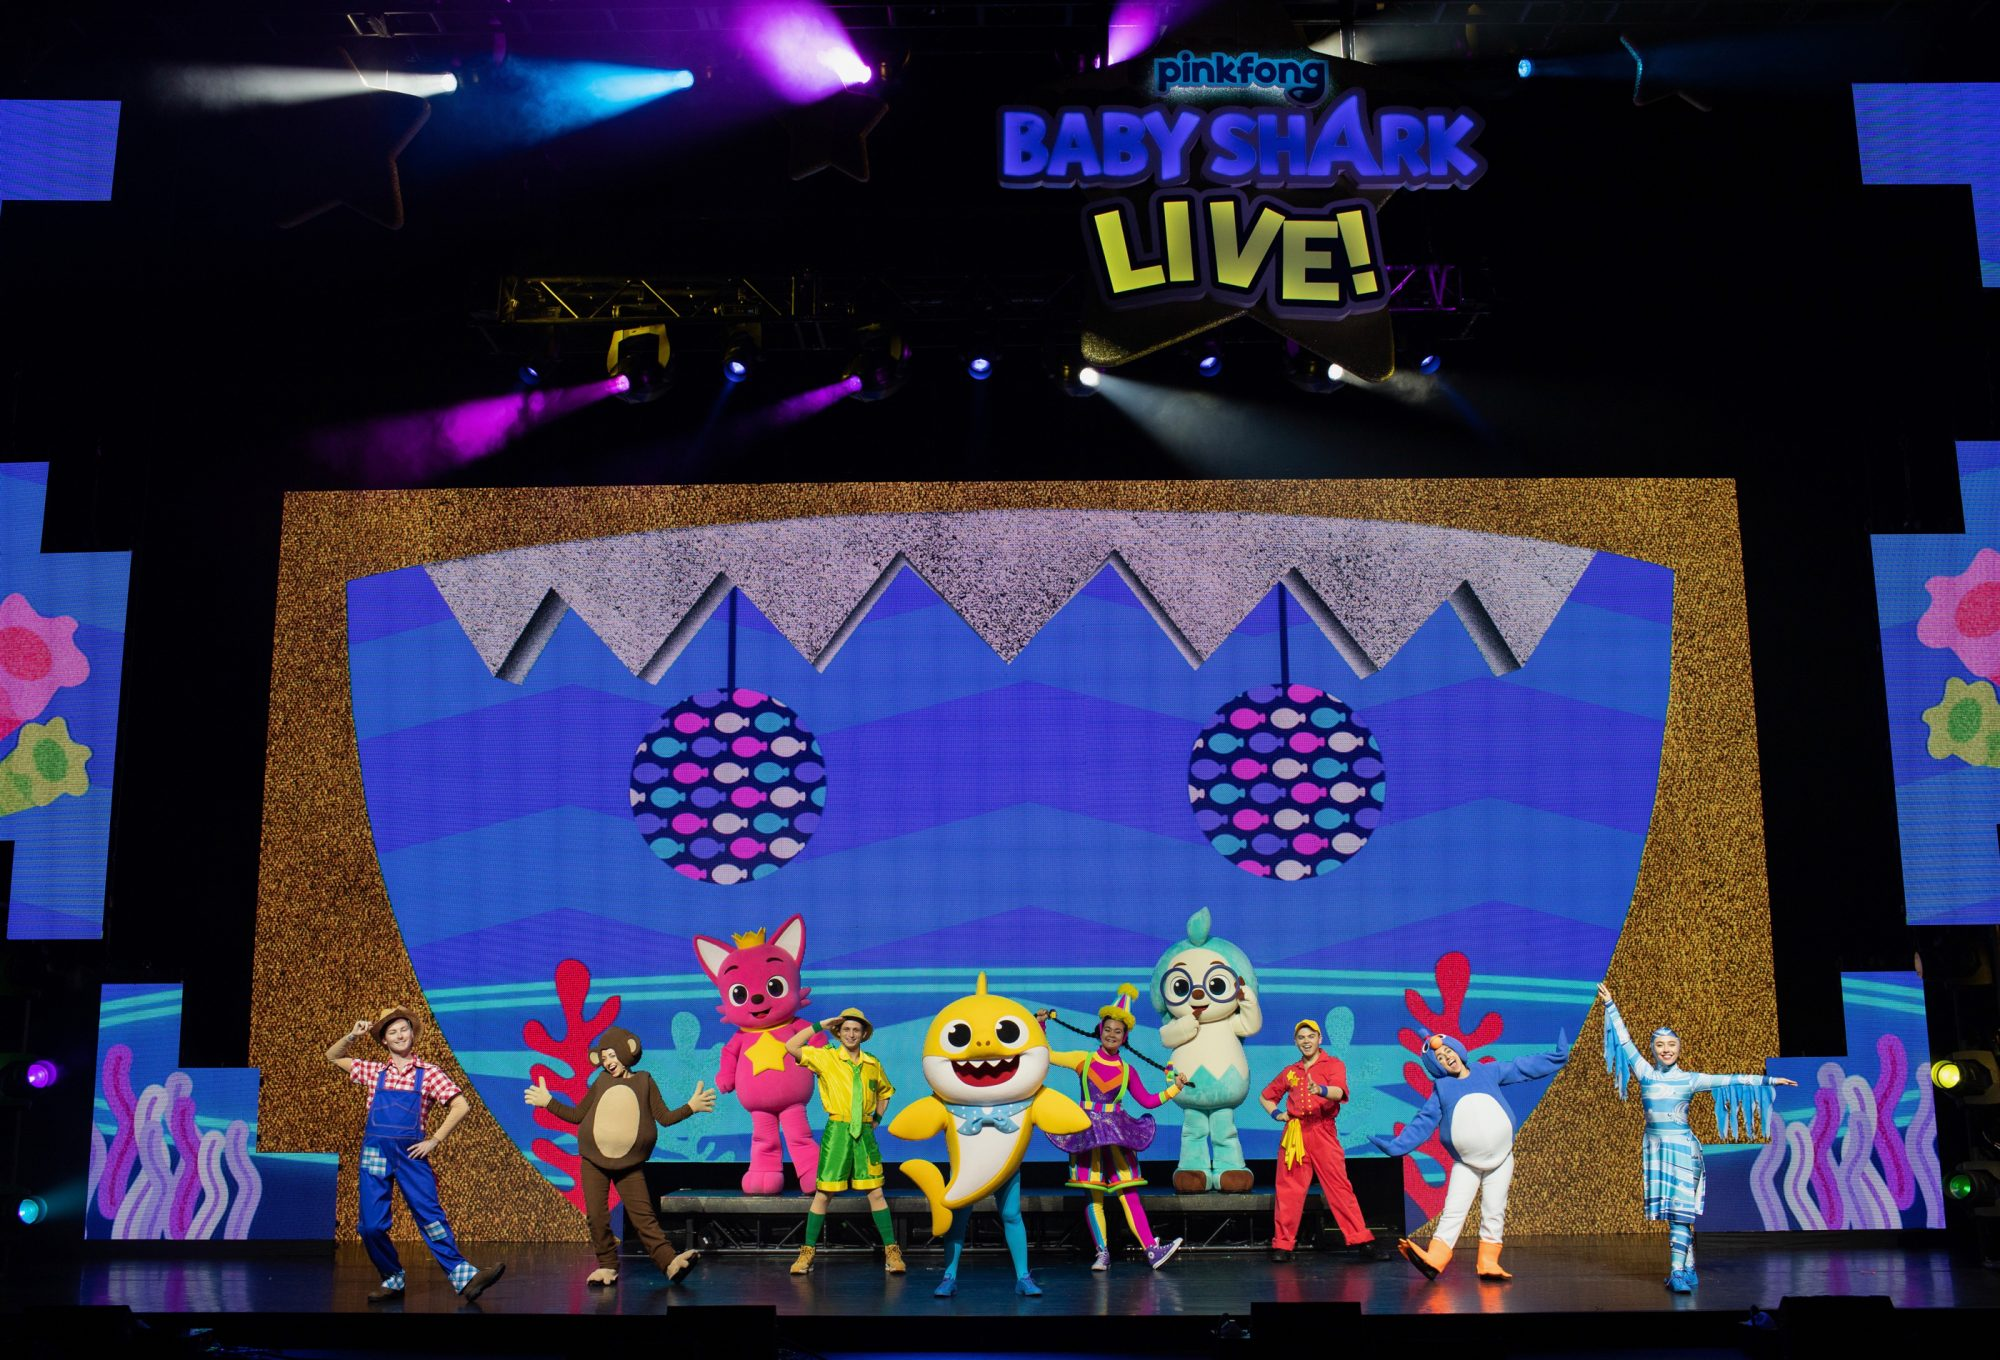 Performers onstage at Baby Shark Live!